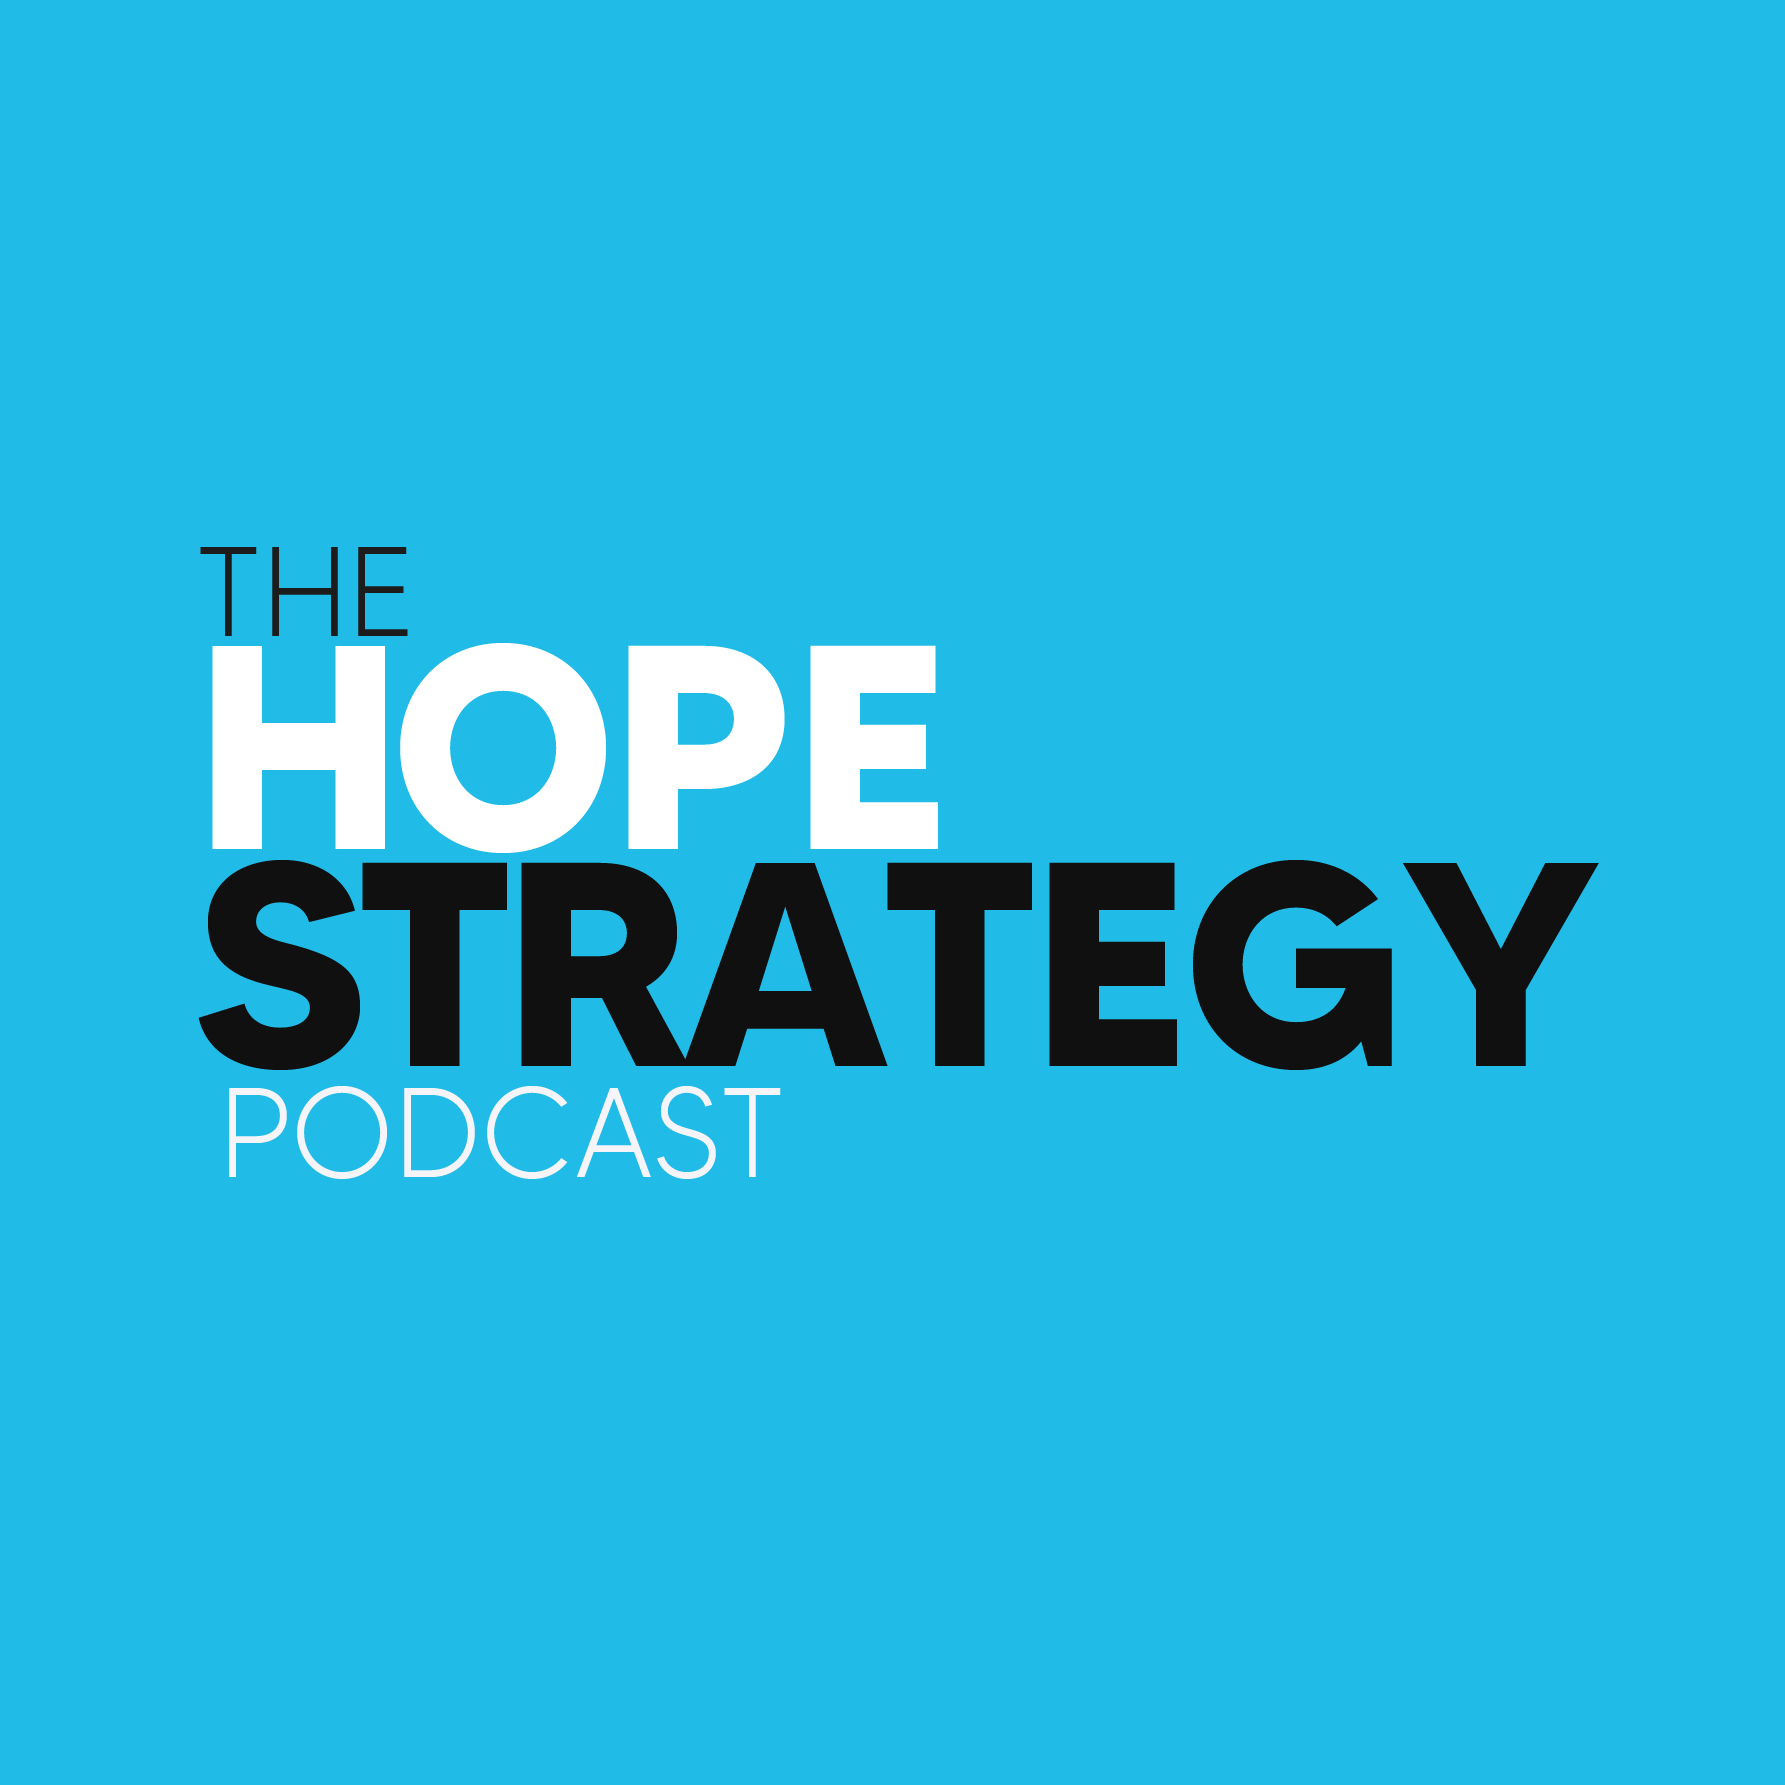 The Hope Strategy Podcast show art